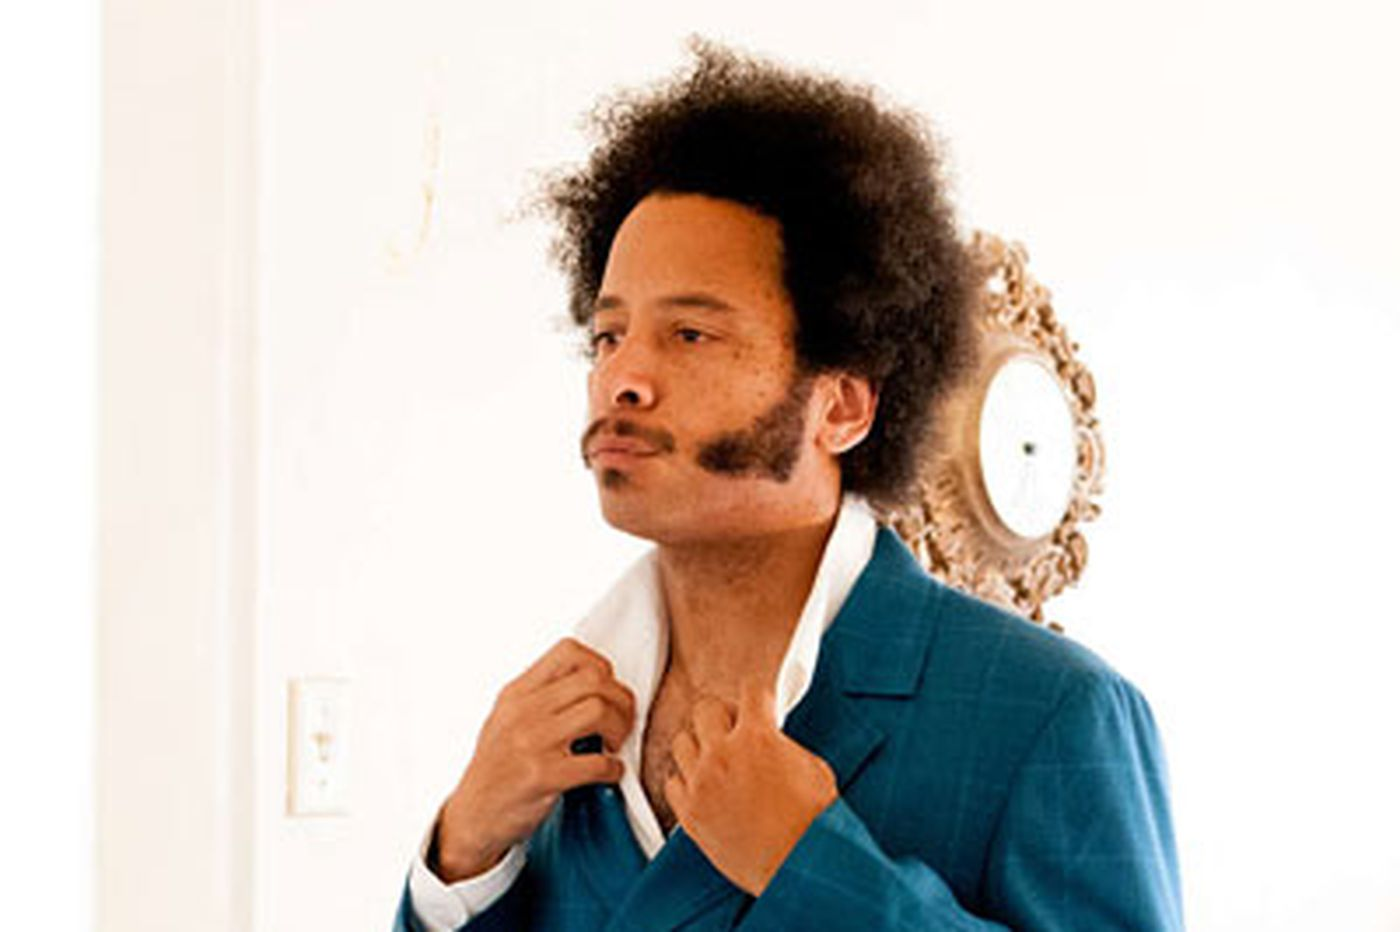 For Boots Riley and The Coup, a rocking, politically focused sound